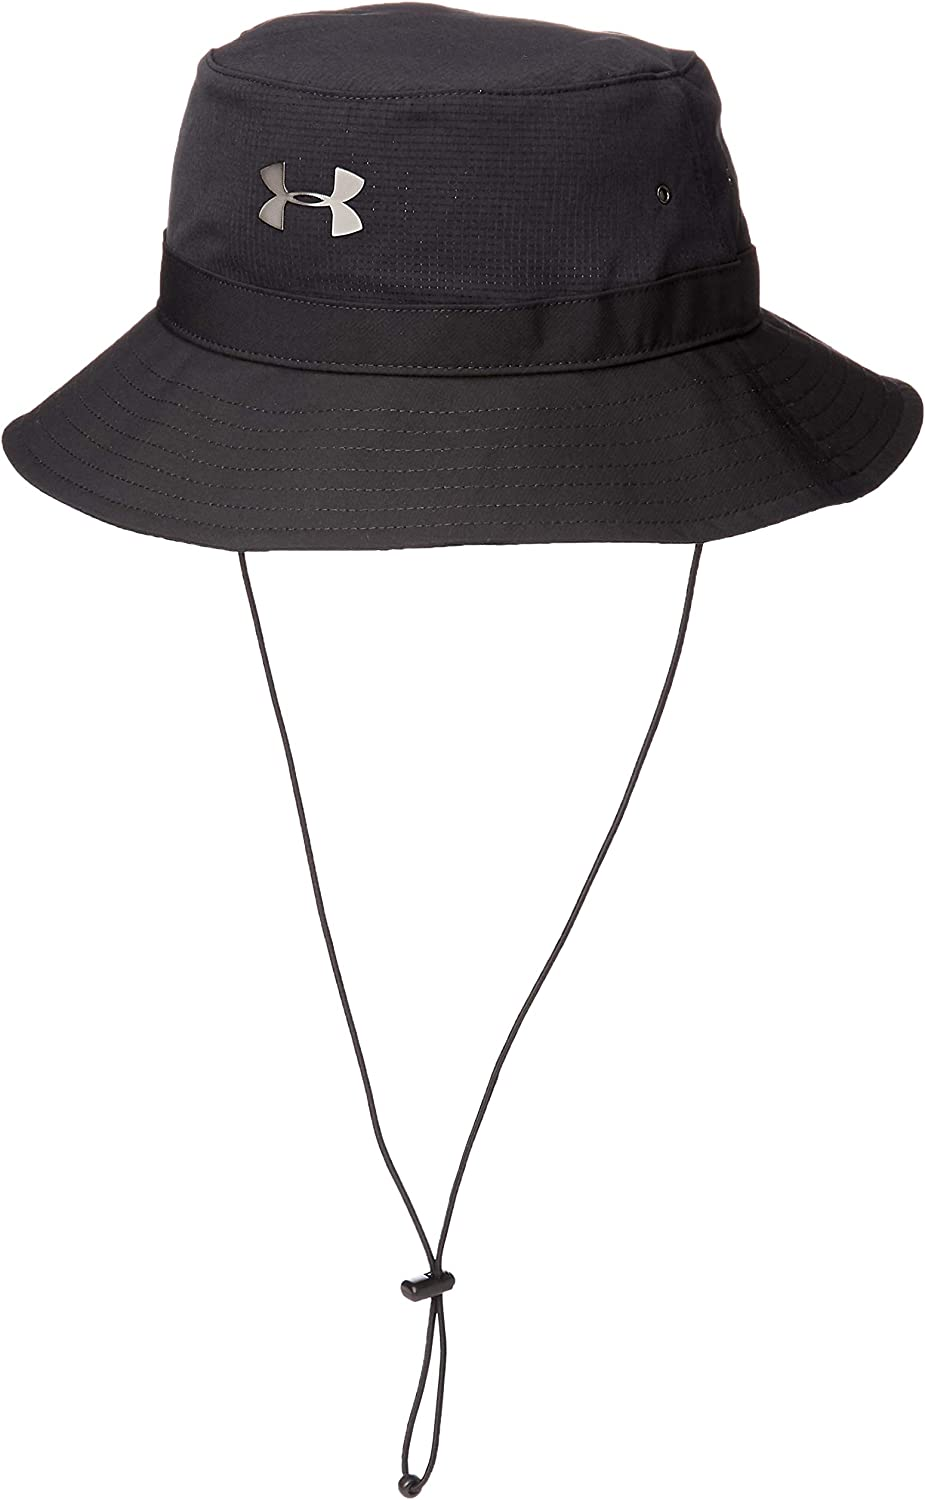 Under Armour Men's ArmourVent Warrior Bucket Hat , Black (001)/Metallic Ore , One Size Fits All: Clothing